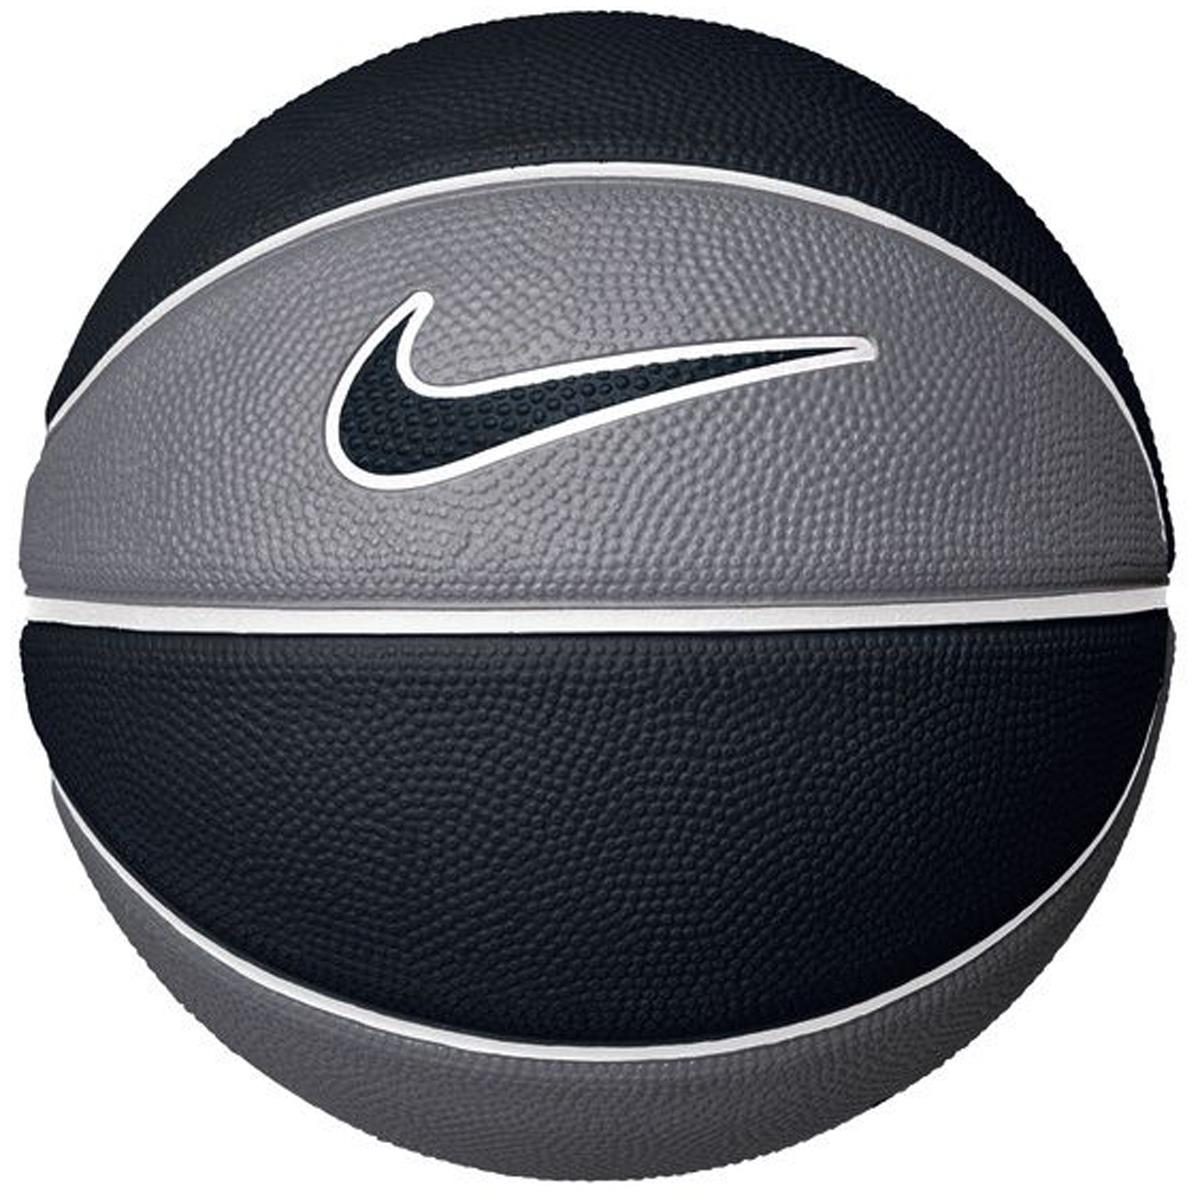 Nike N.KI.08.018.03 SKILLS MİNİ BASKETBOL TOPU